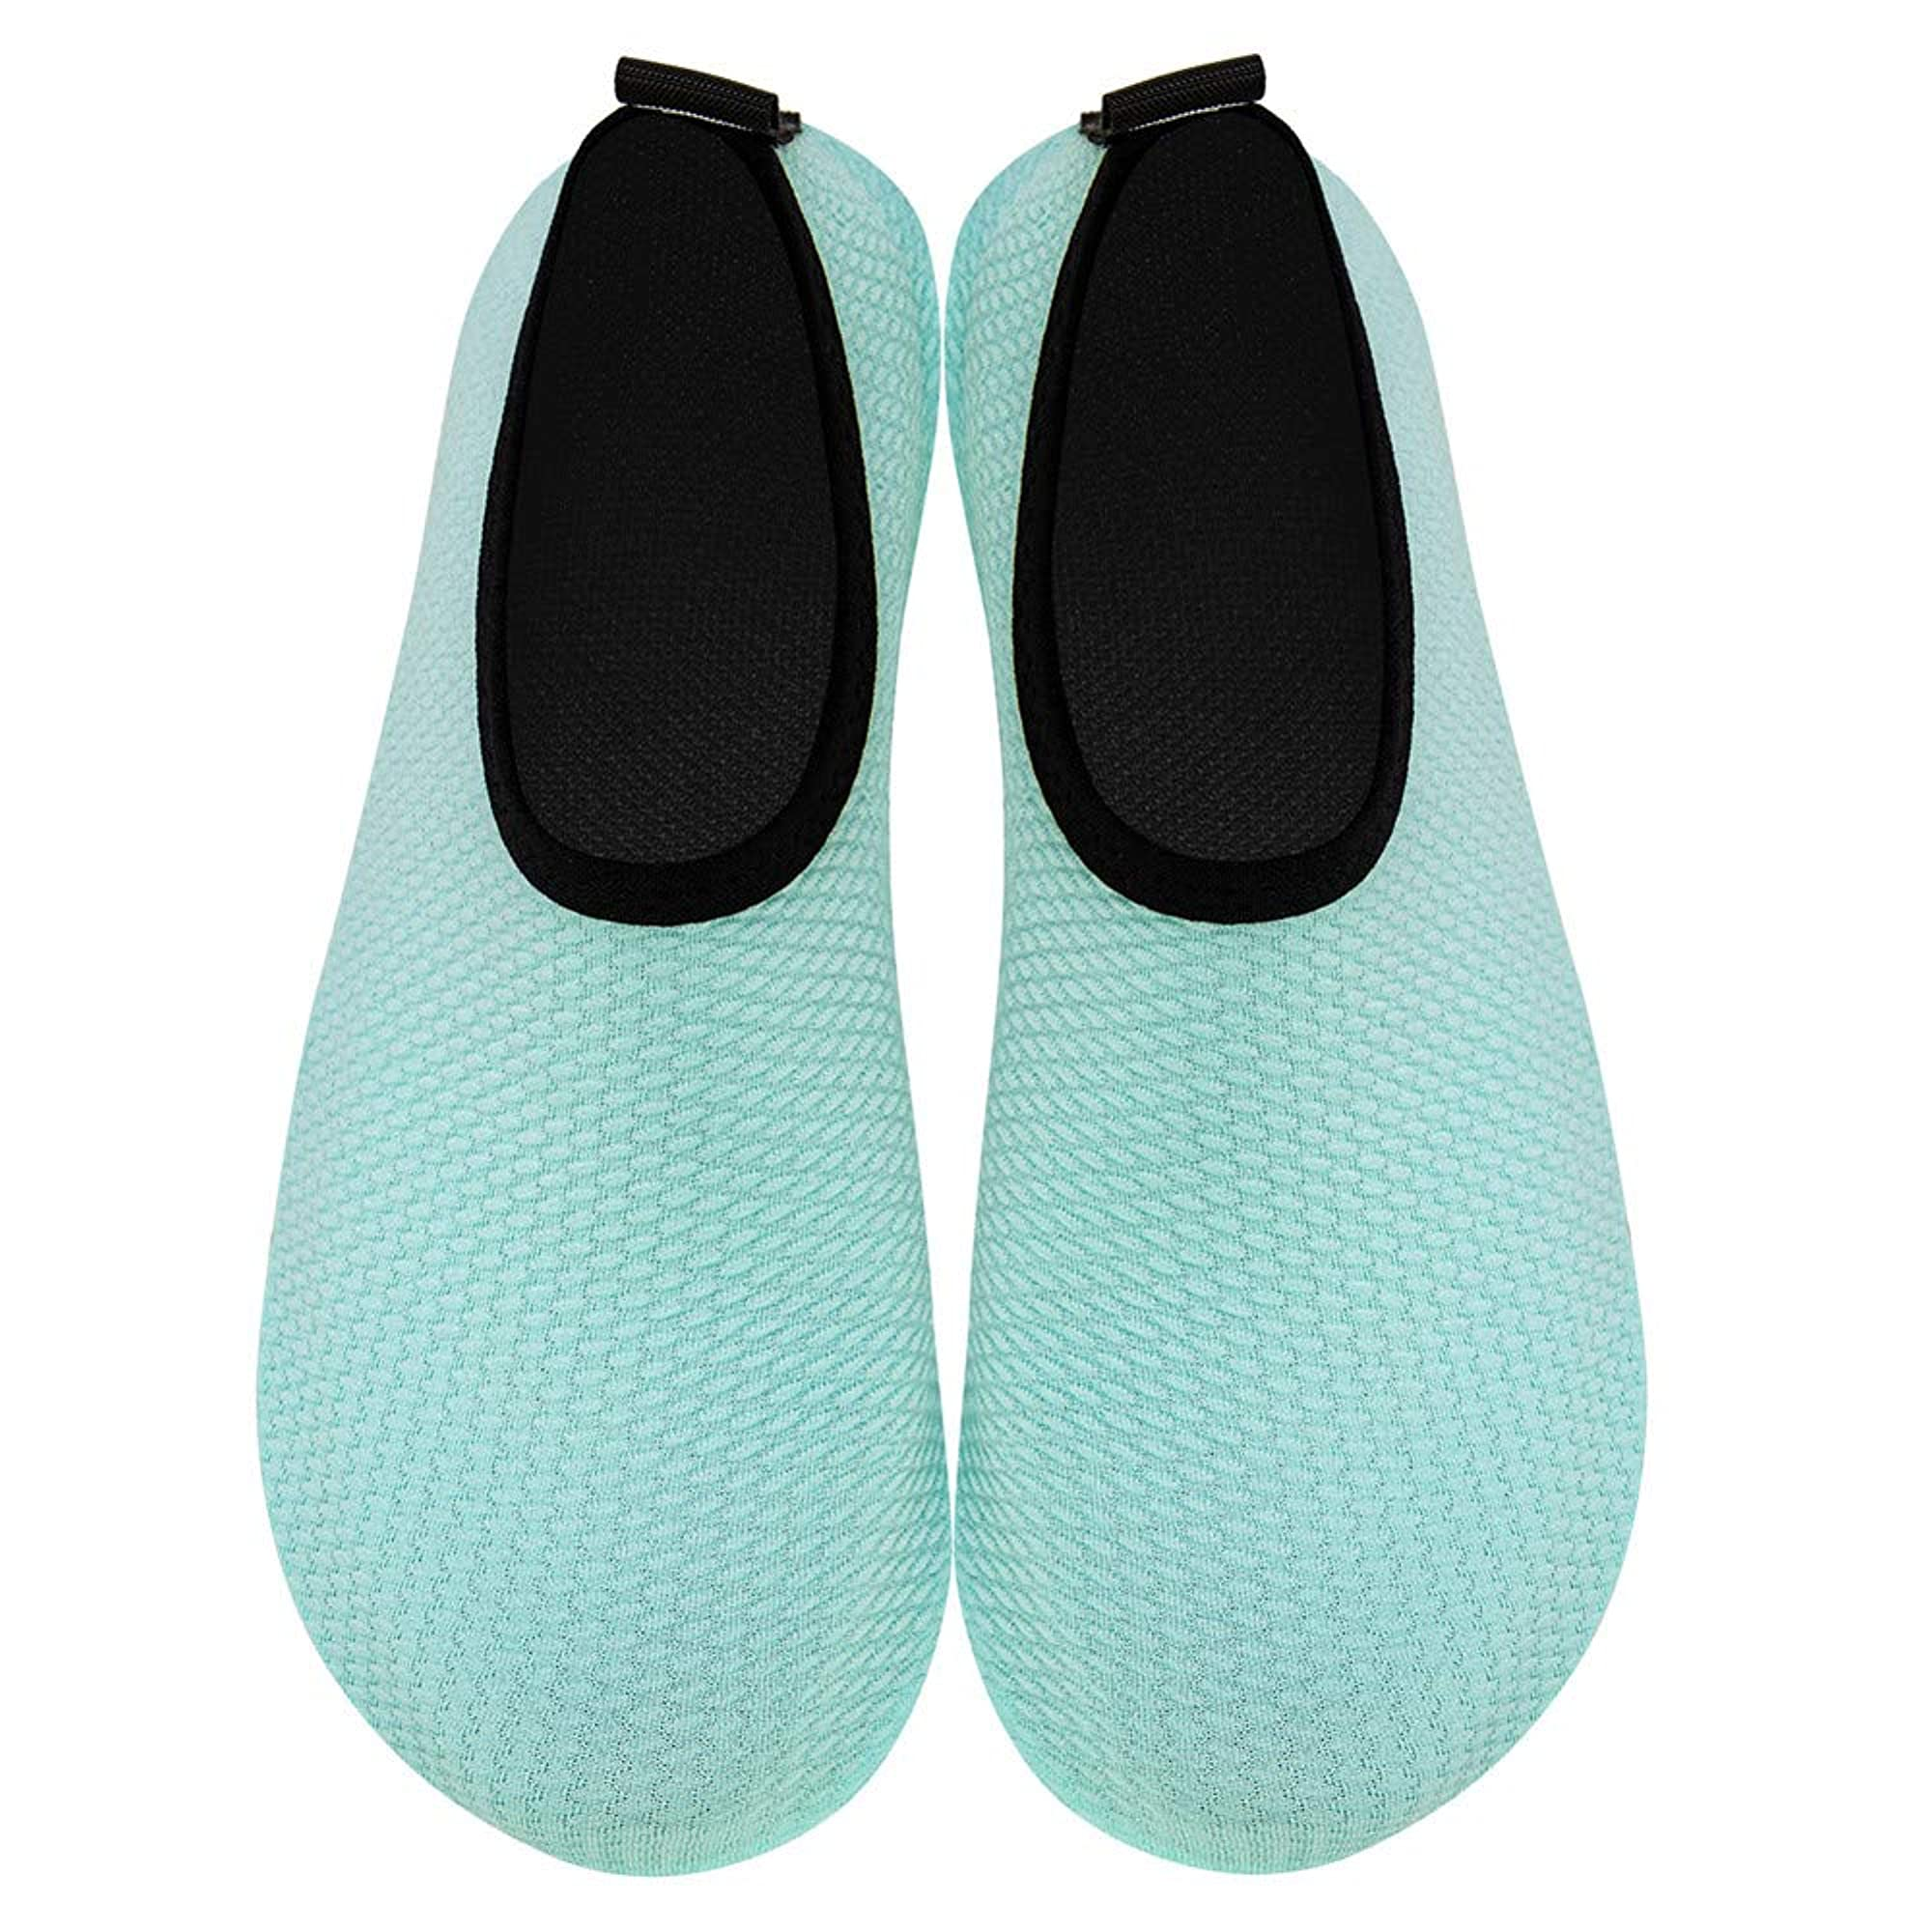 Barefoot Shoes For Beach, Swim, And Yoga